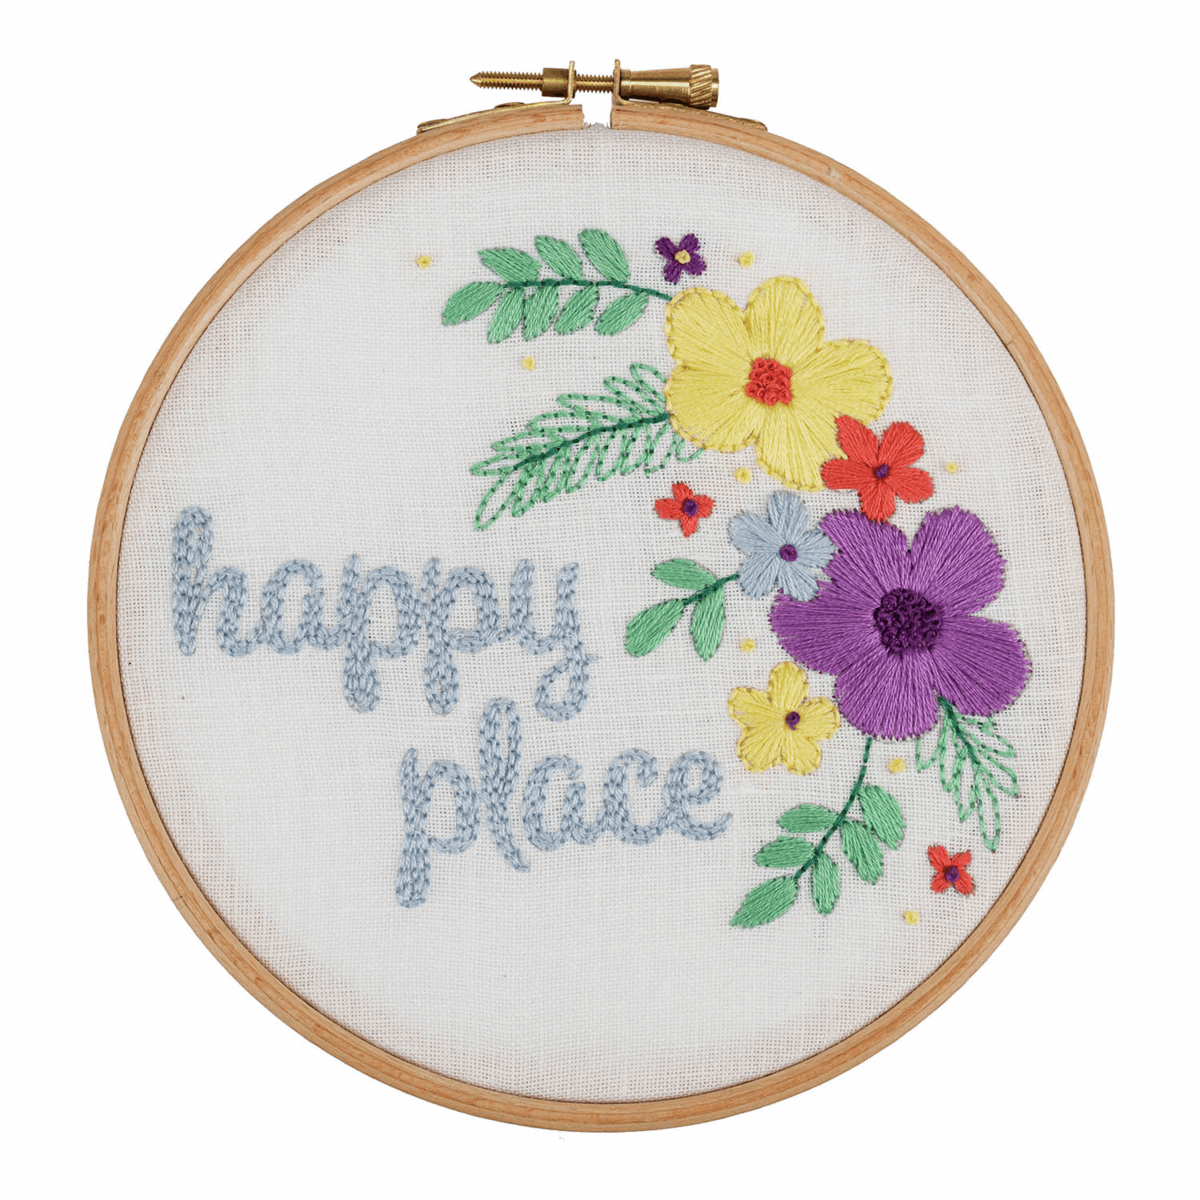 Picture of Embroidery Hoop Kit: Happy Place